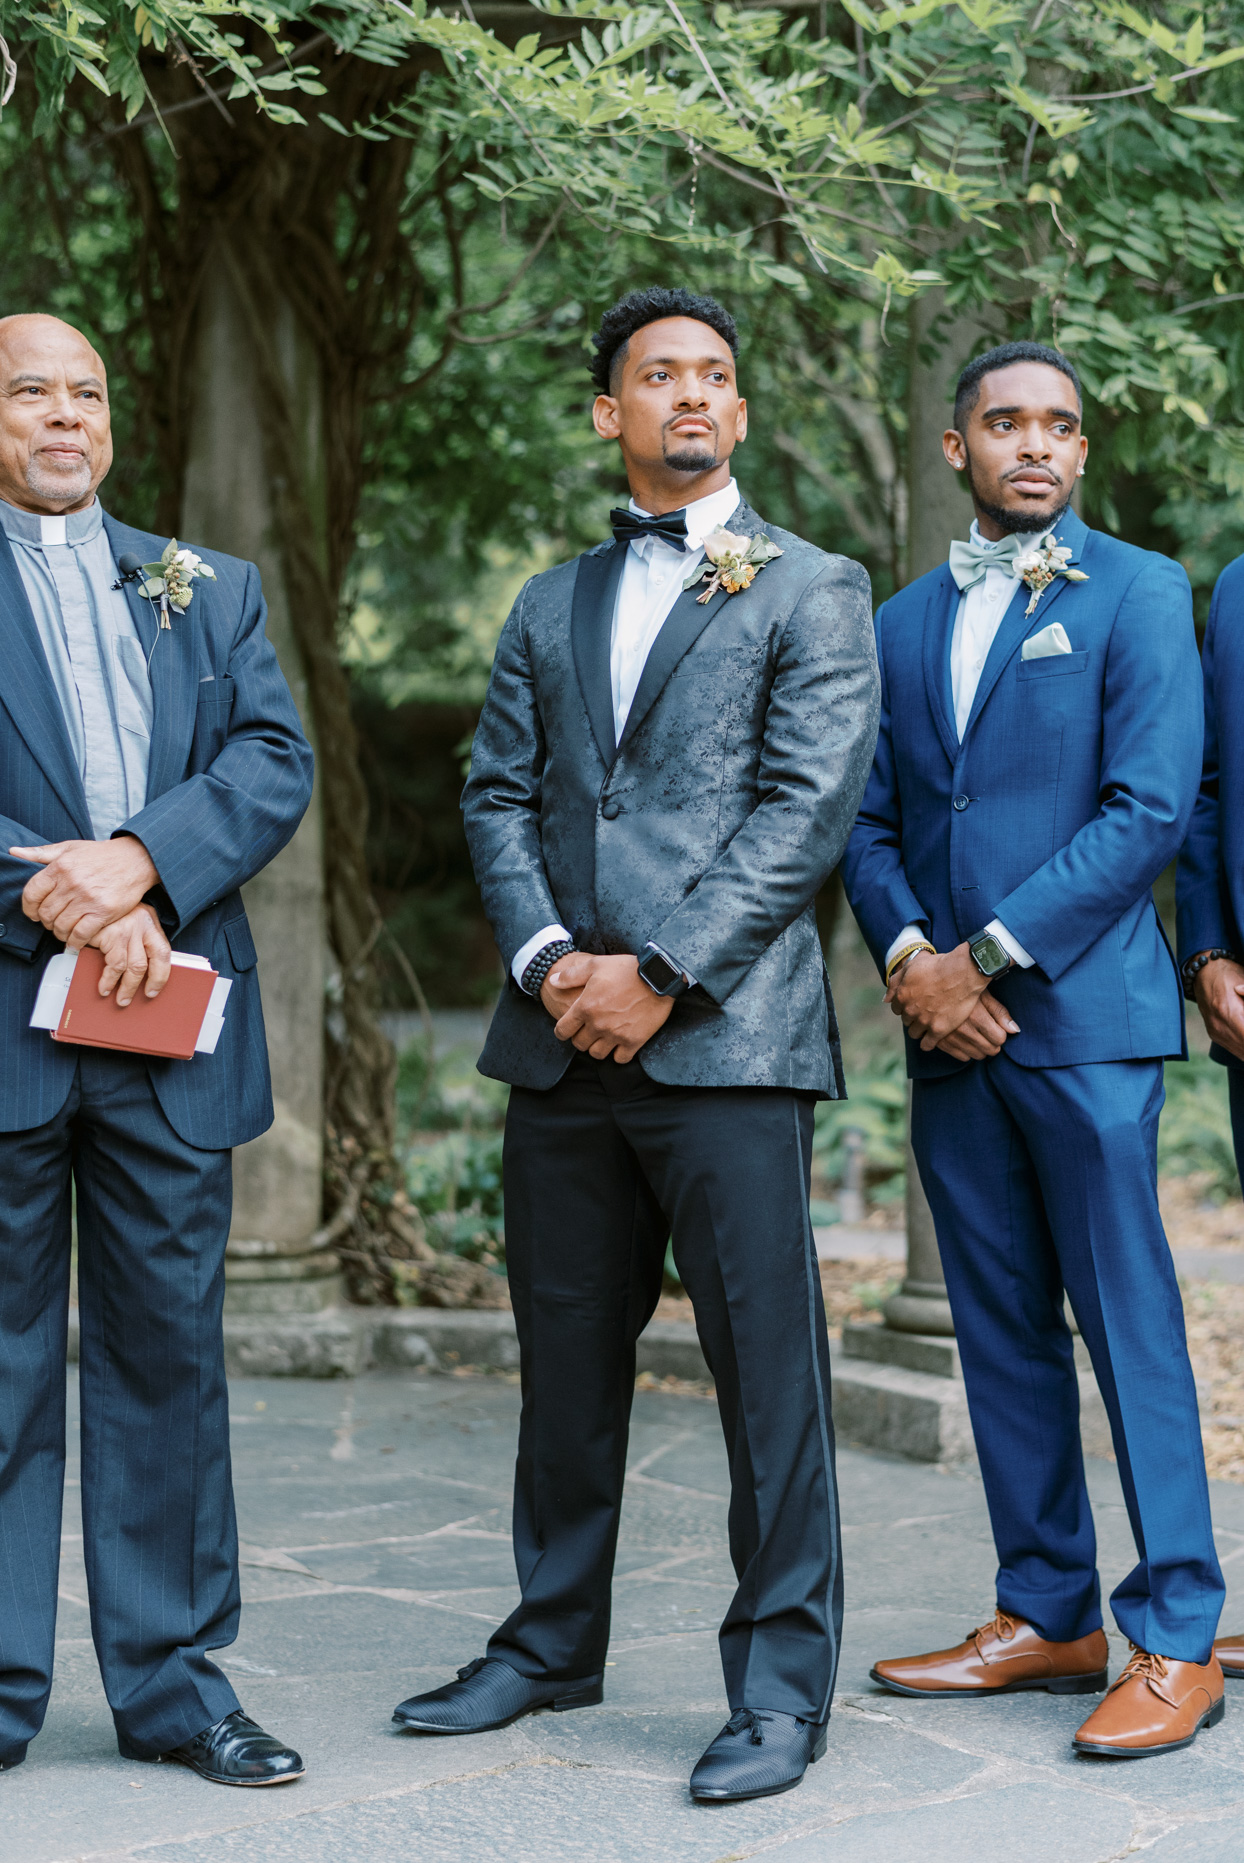 groom during processional standing with groomsmen